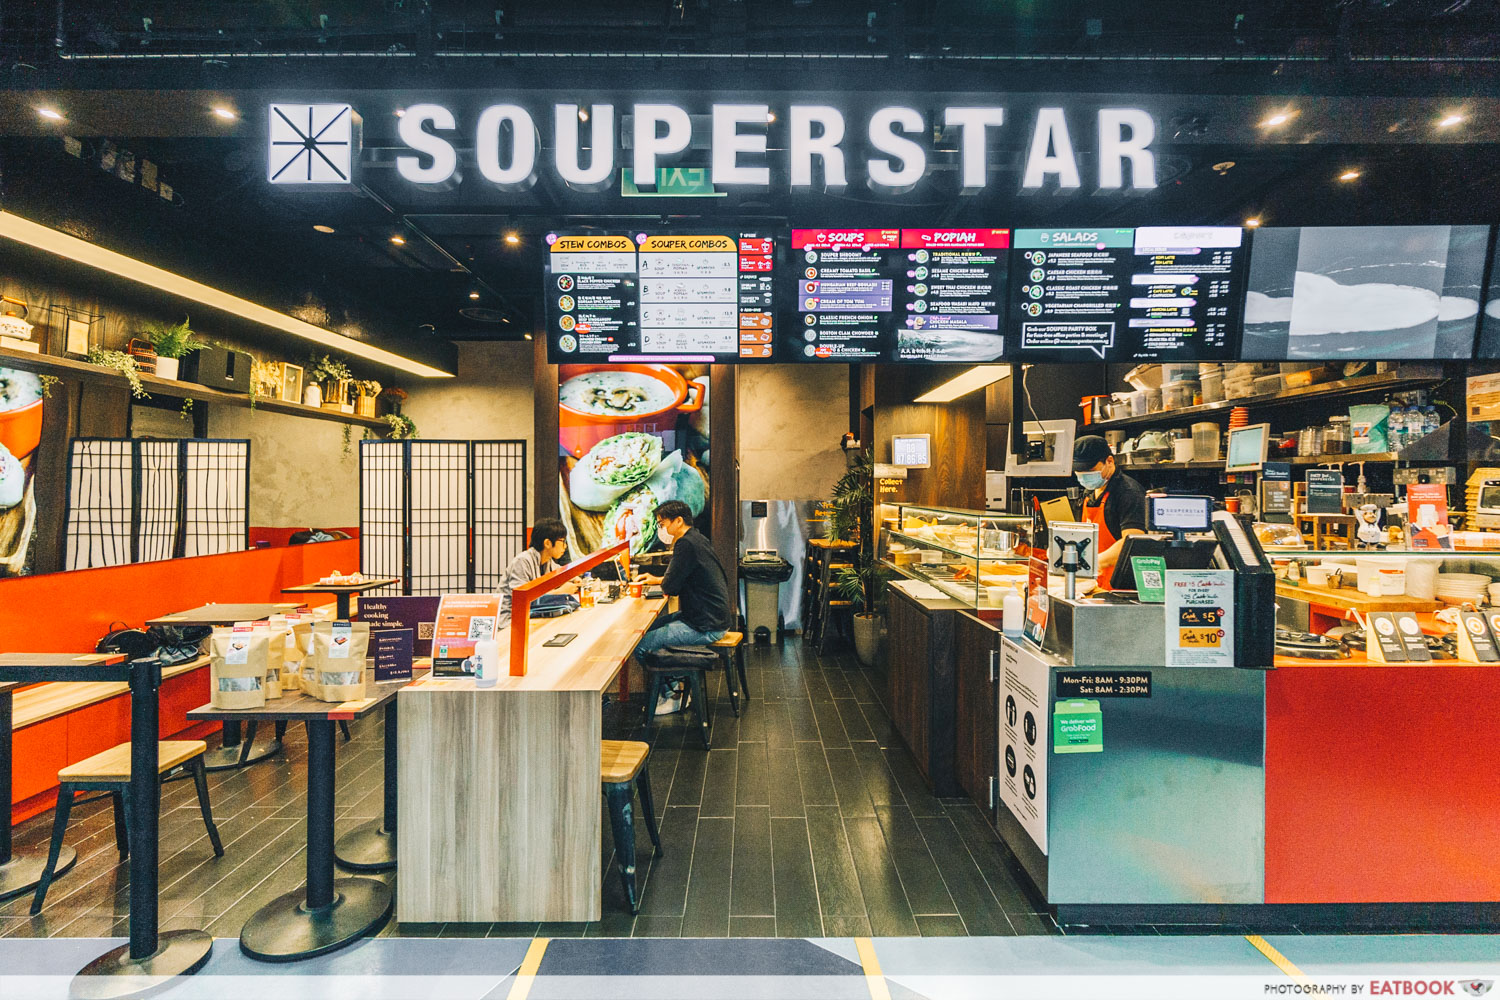 One Raffles Place Souperstar Store